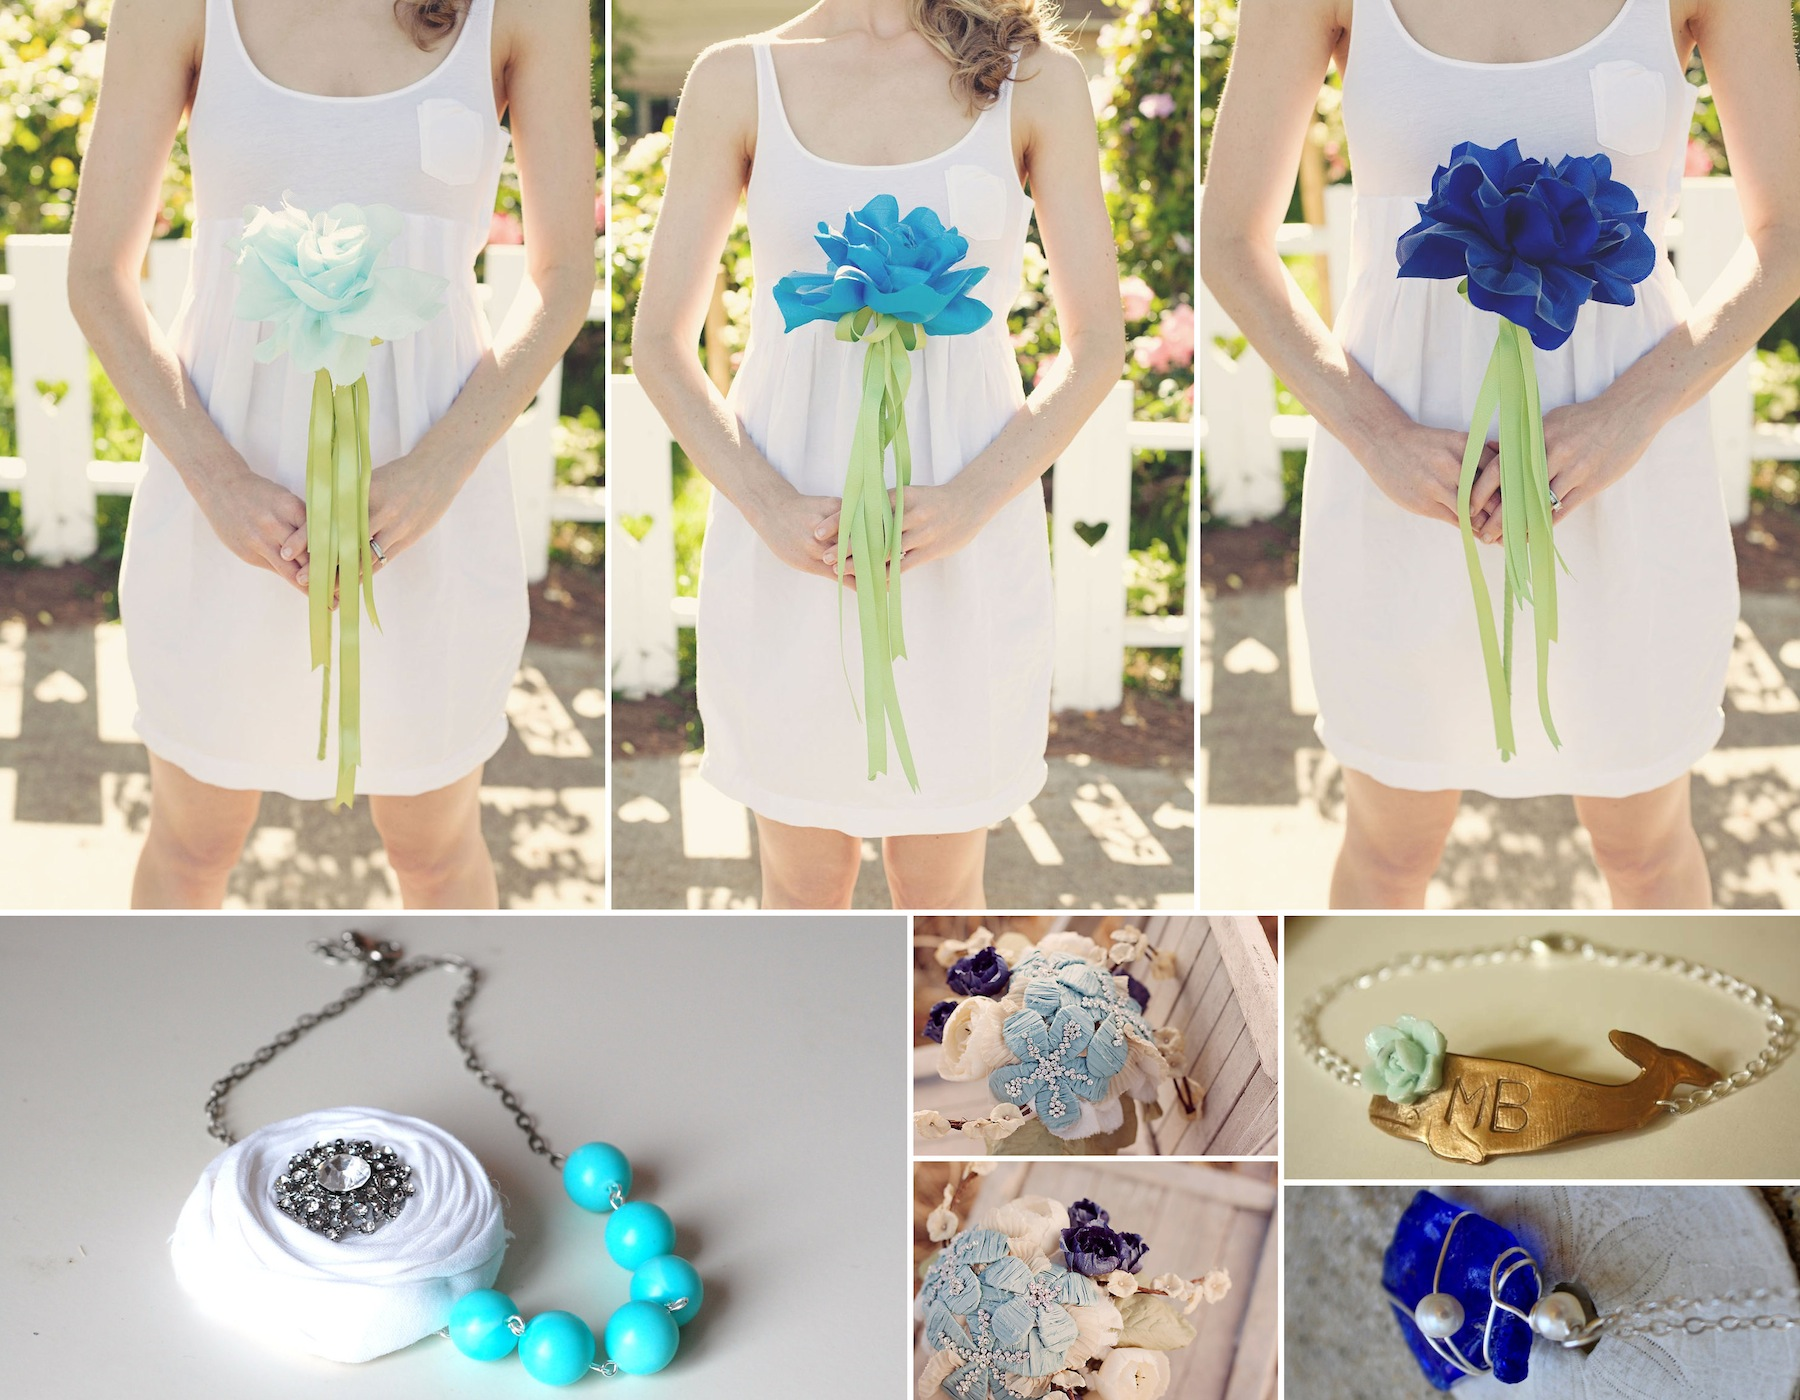 Something-blue-wedding-inspiration-bridal-style-spotting-on-etsy.original